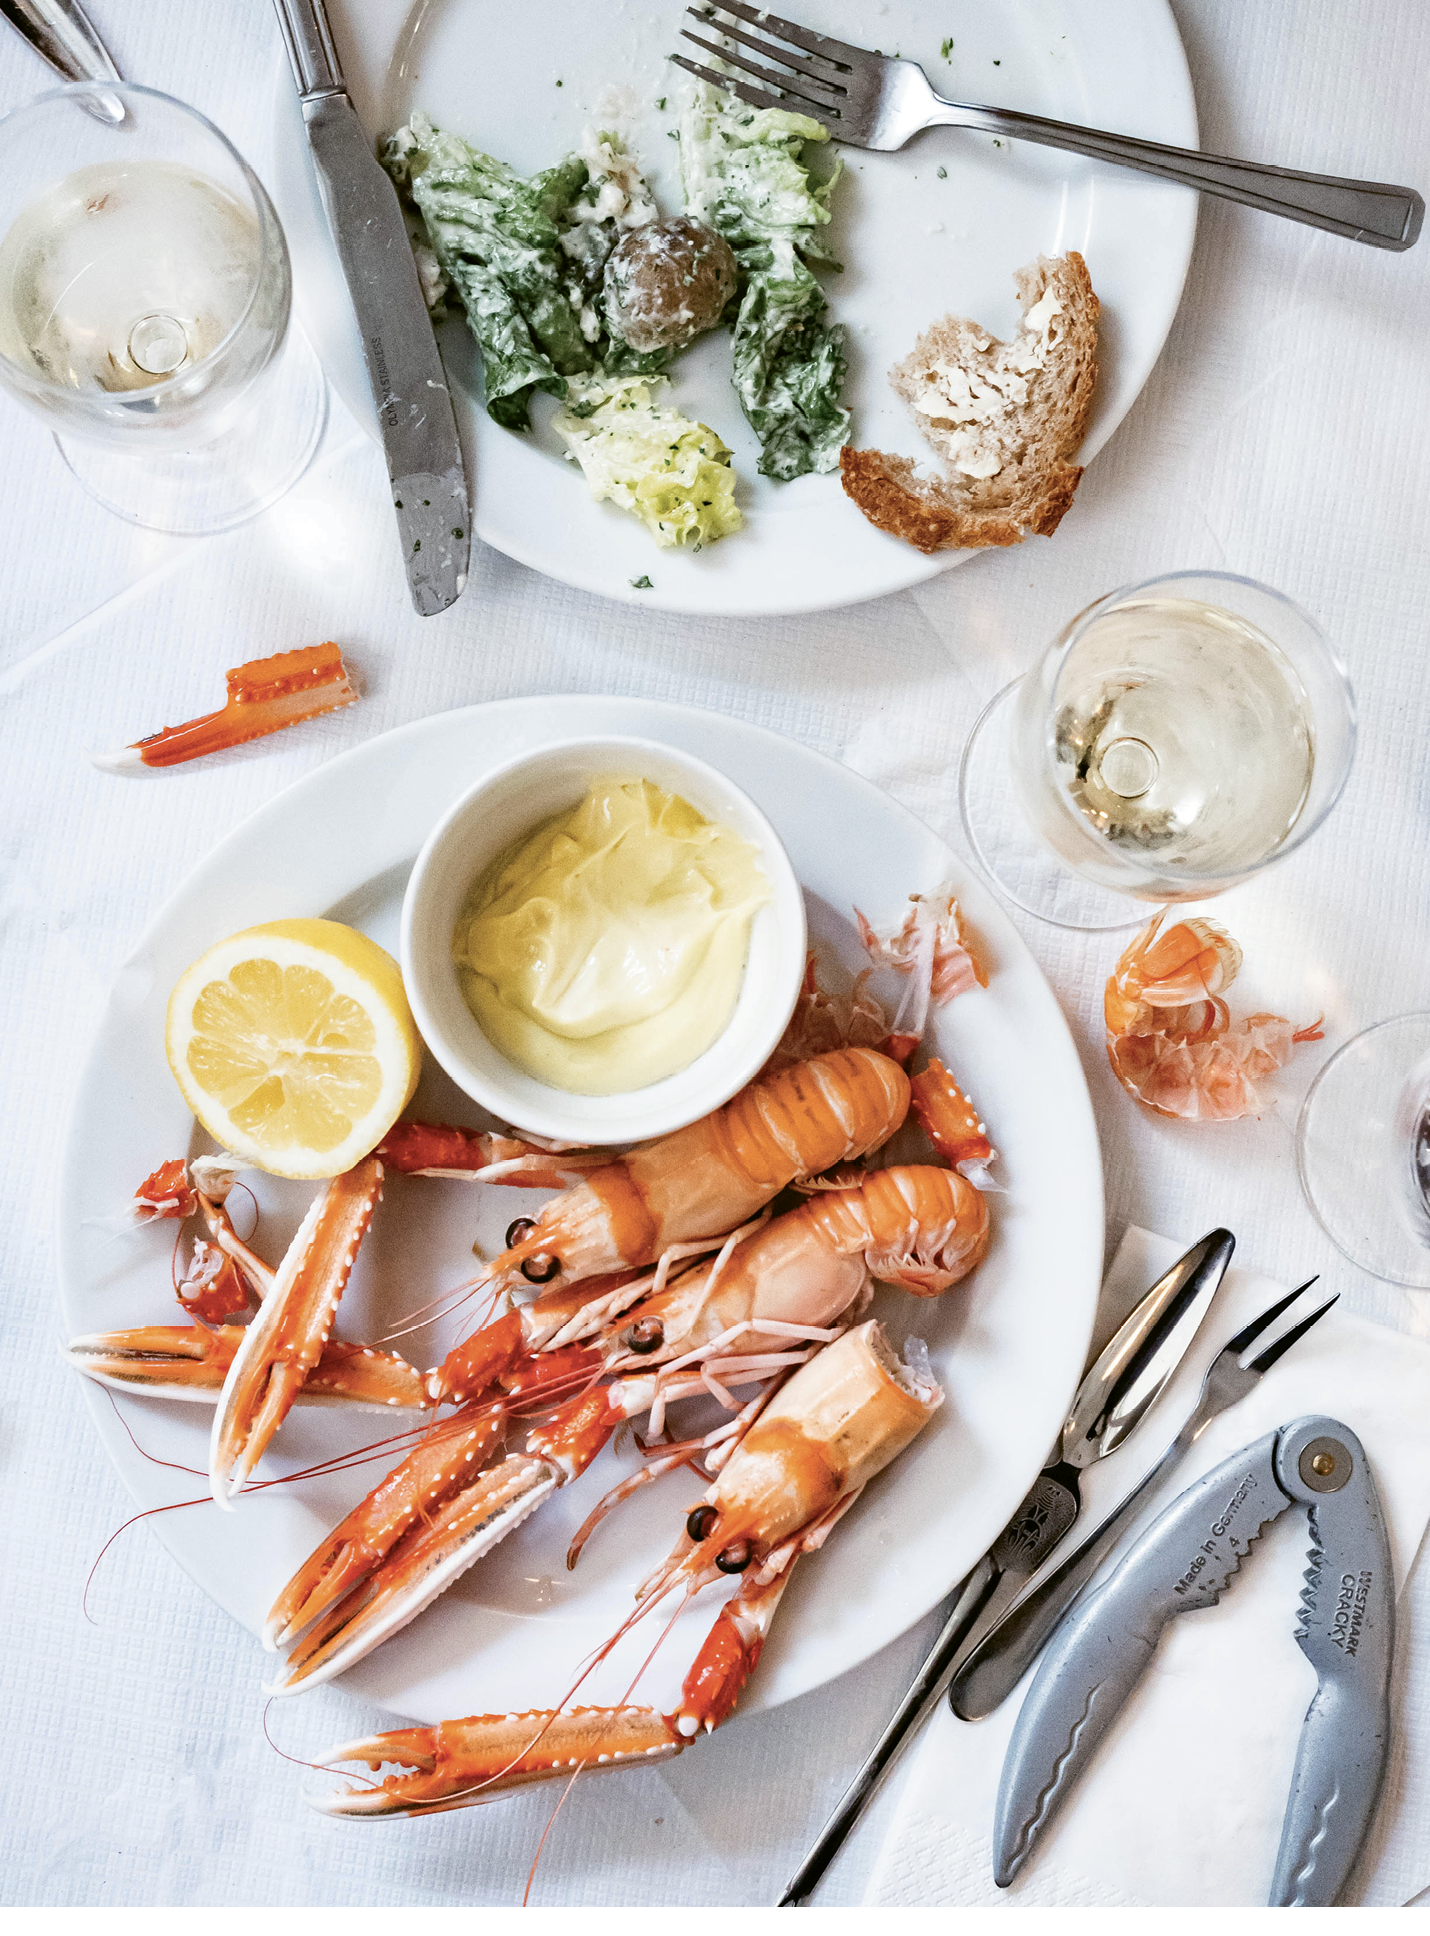 The day's menu included chilled langoustines with lemon and aioli, lobster-like and salty-bright, with glasses of Petit Salé de Villeneuve, 2017.